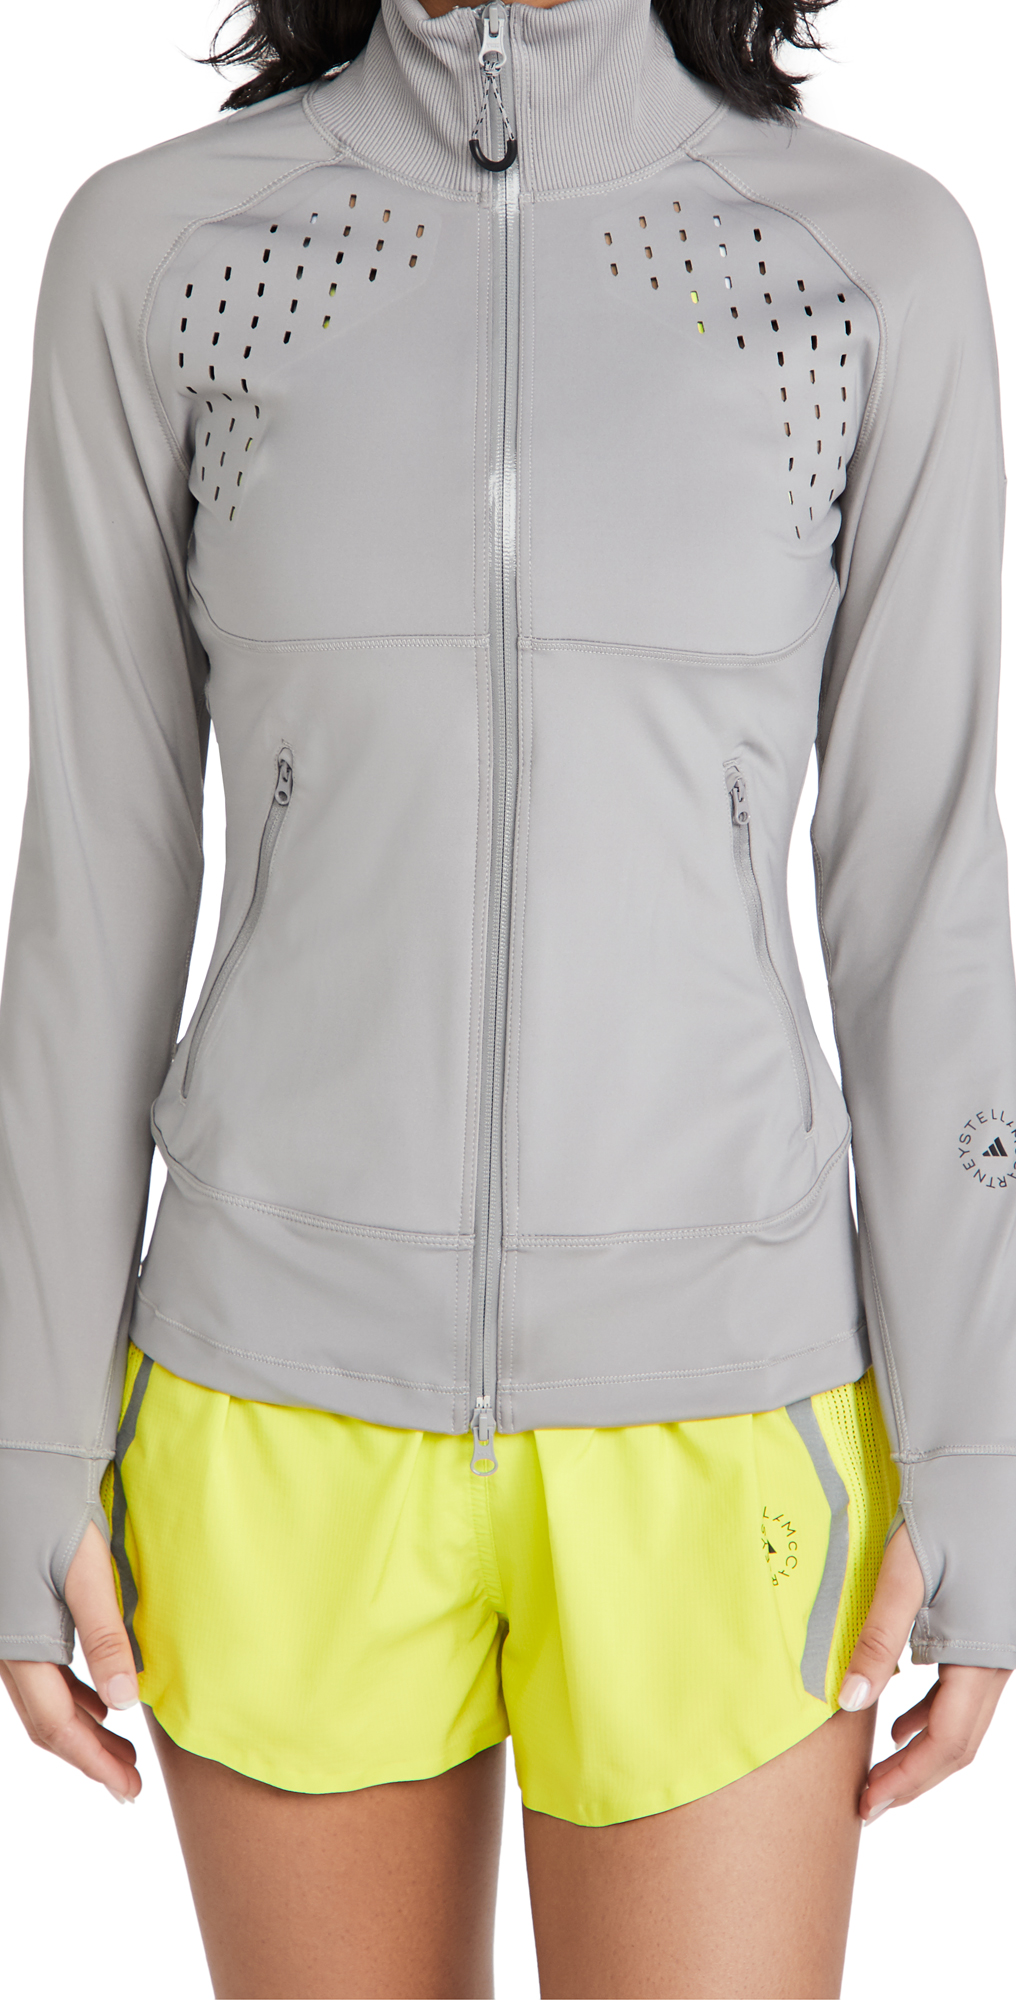 Adidas By Stella Mccartney Jackets TRUEPURPOSE MIDLAYER JACKET